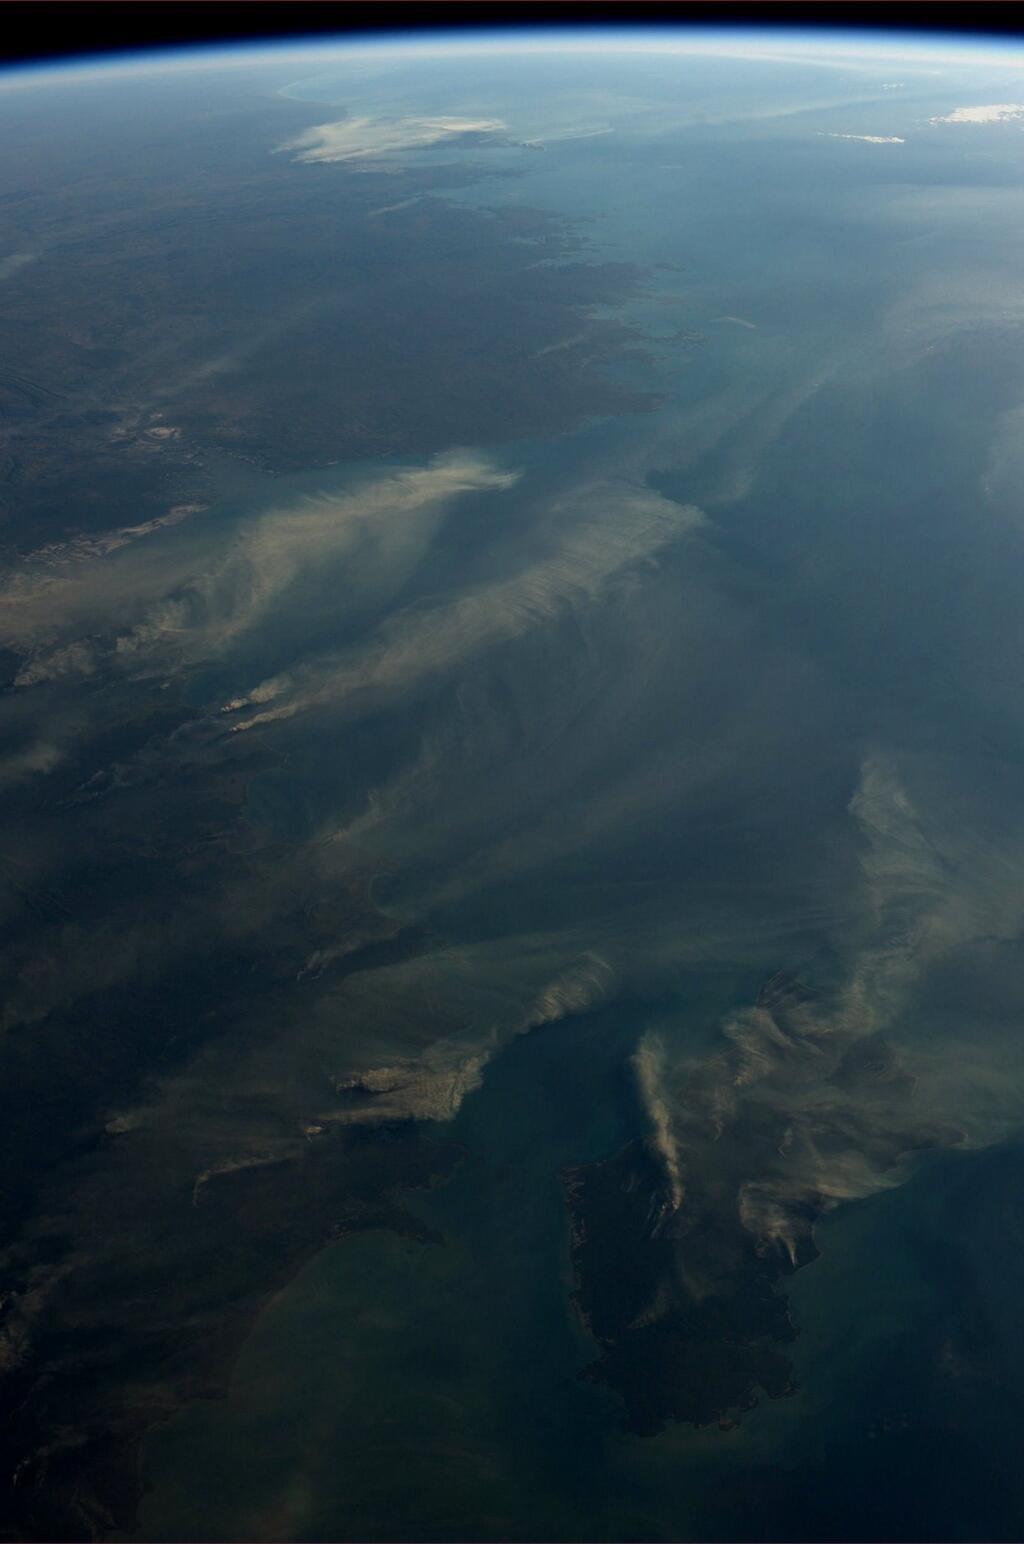 Australia on Timor Sea as Seen From ISS